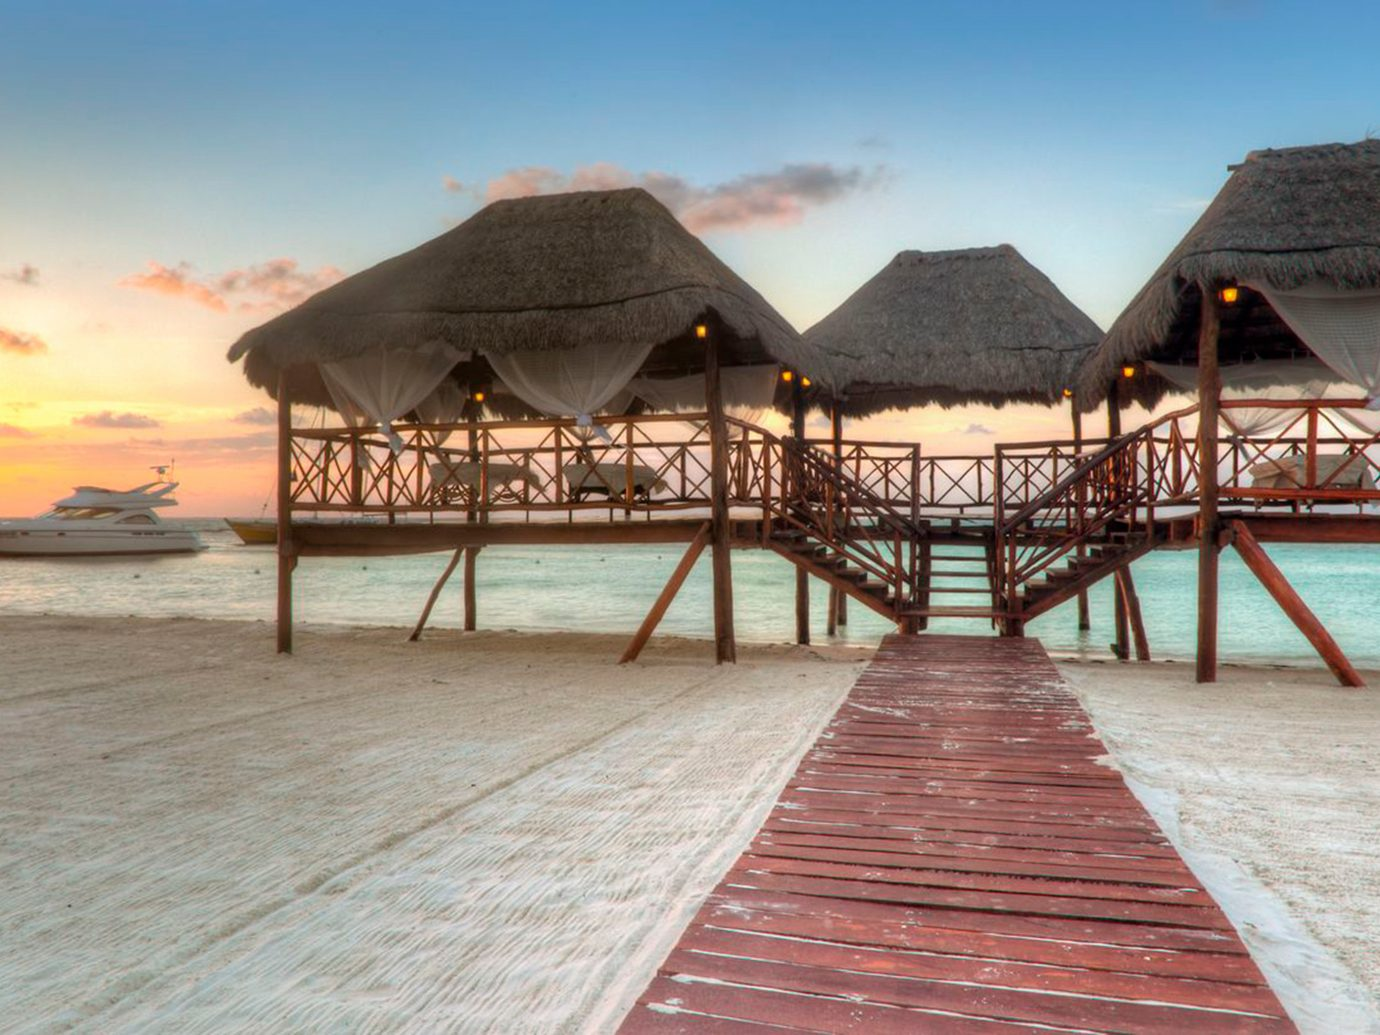 Beachfront Hotels Overwater Bungalow Romance Romantic Waterfront ground sky outdoor water Beach pier walkway vacation Resort boardwalk Sea empty lined sandy several